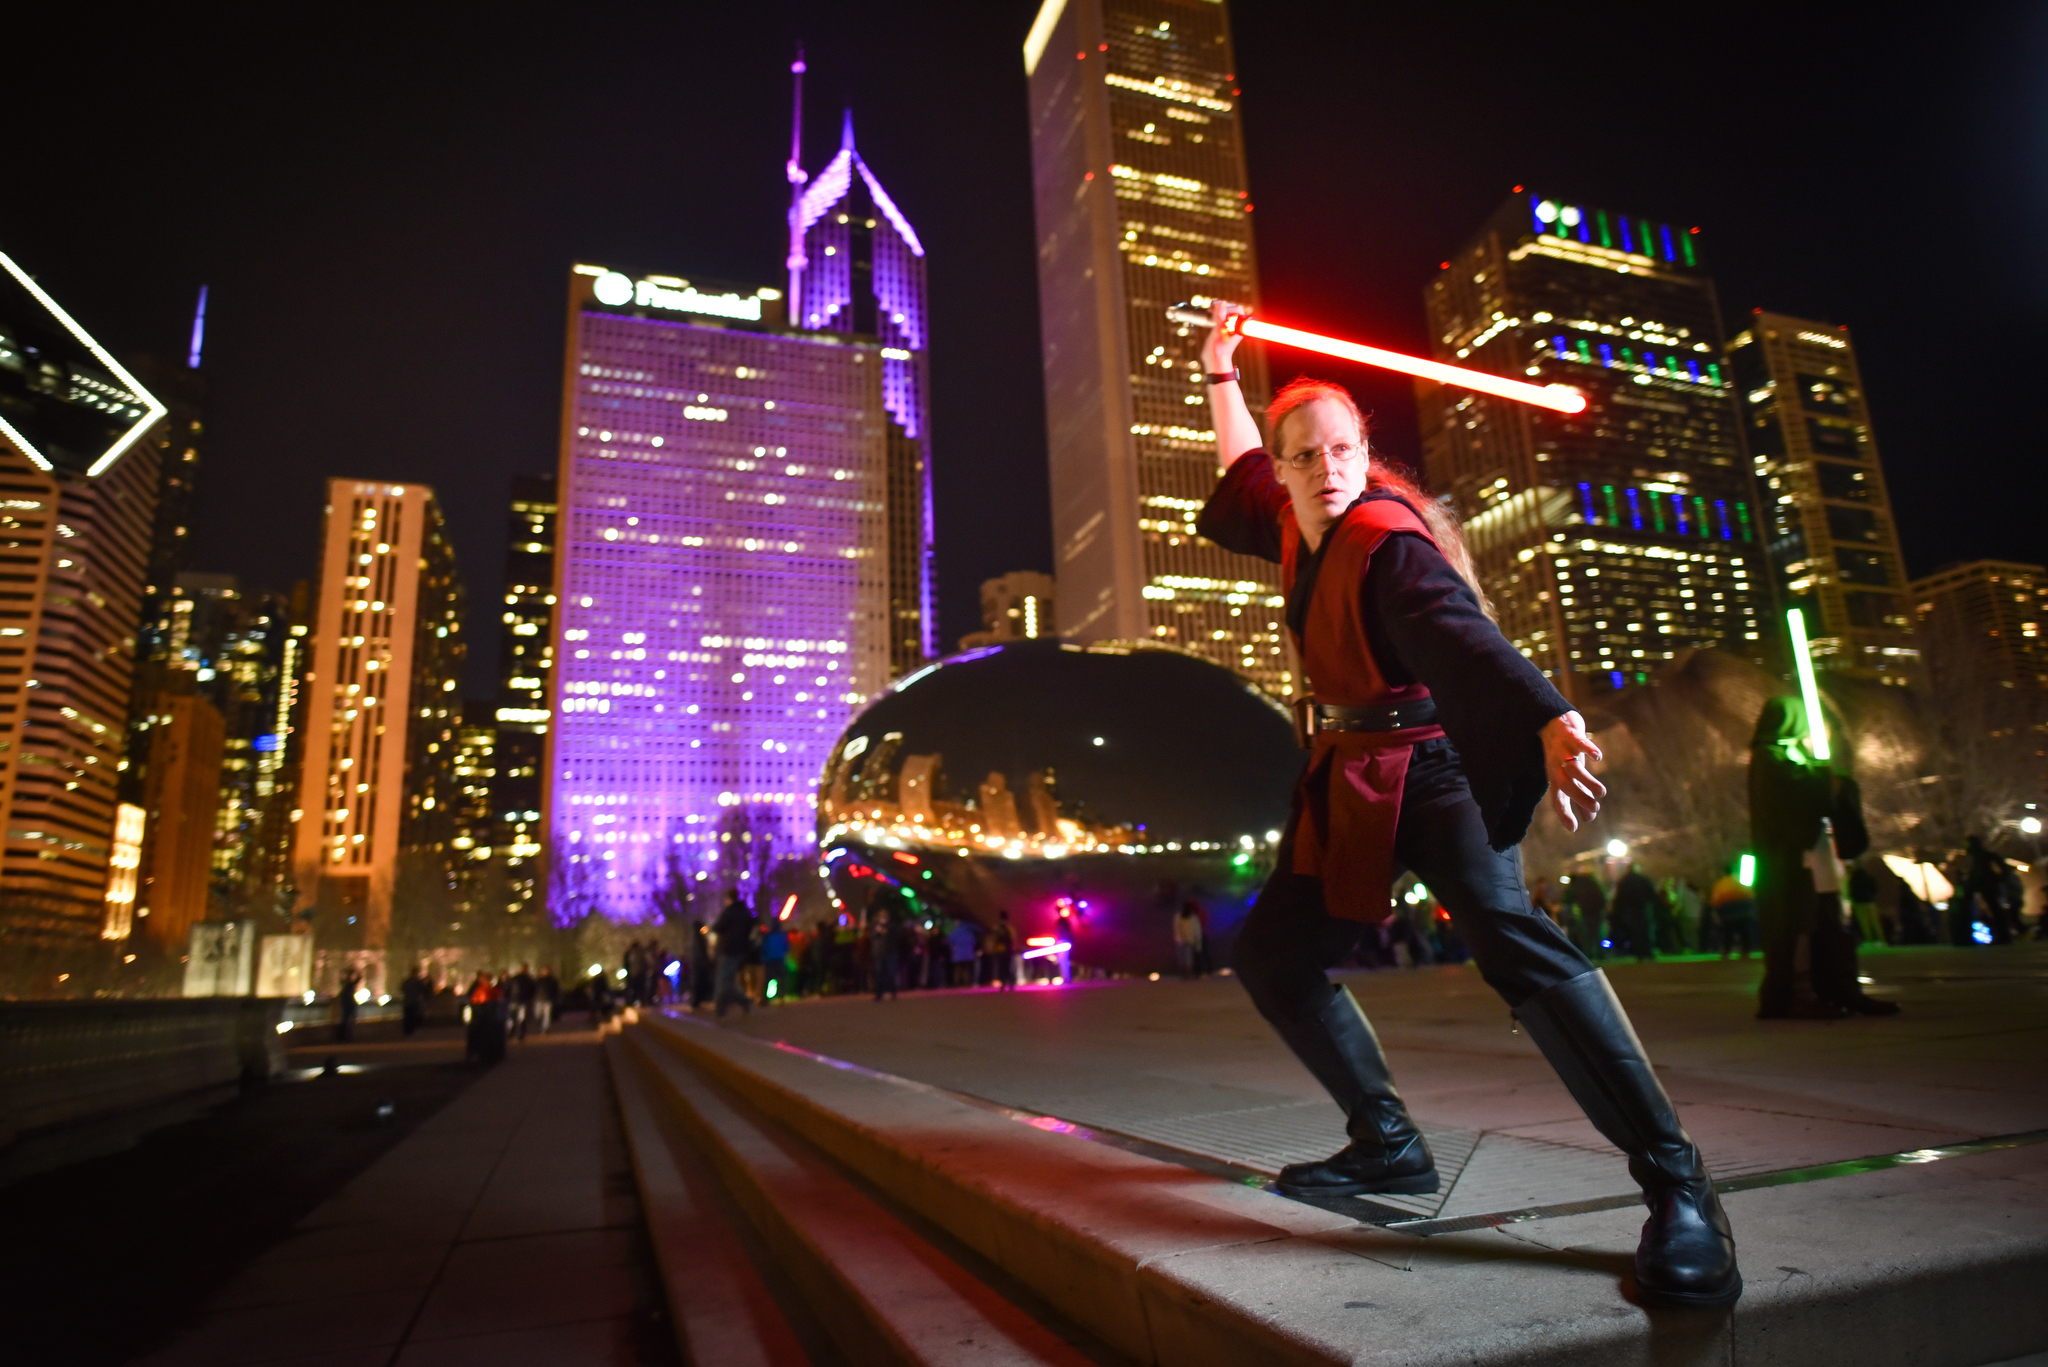 2019.04.14 - Star Wars Celebration Chicago 288868.JPG